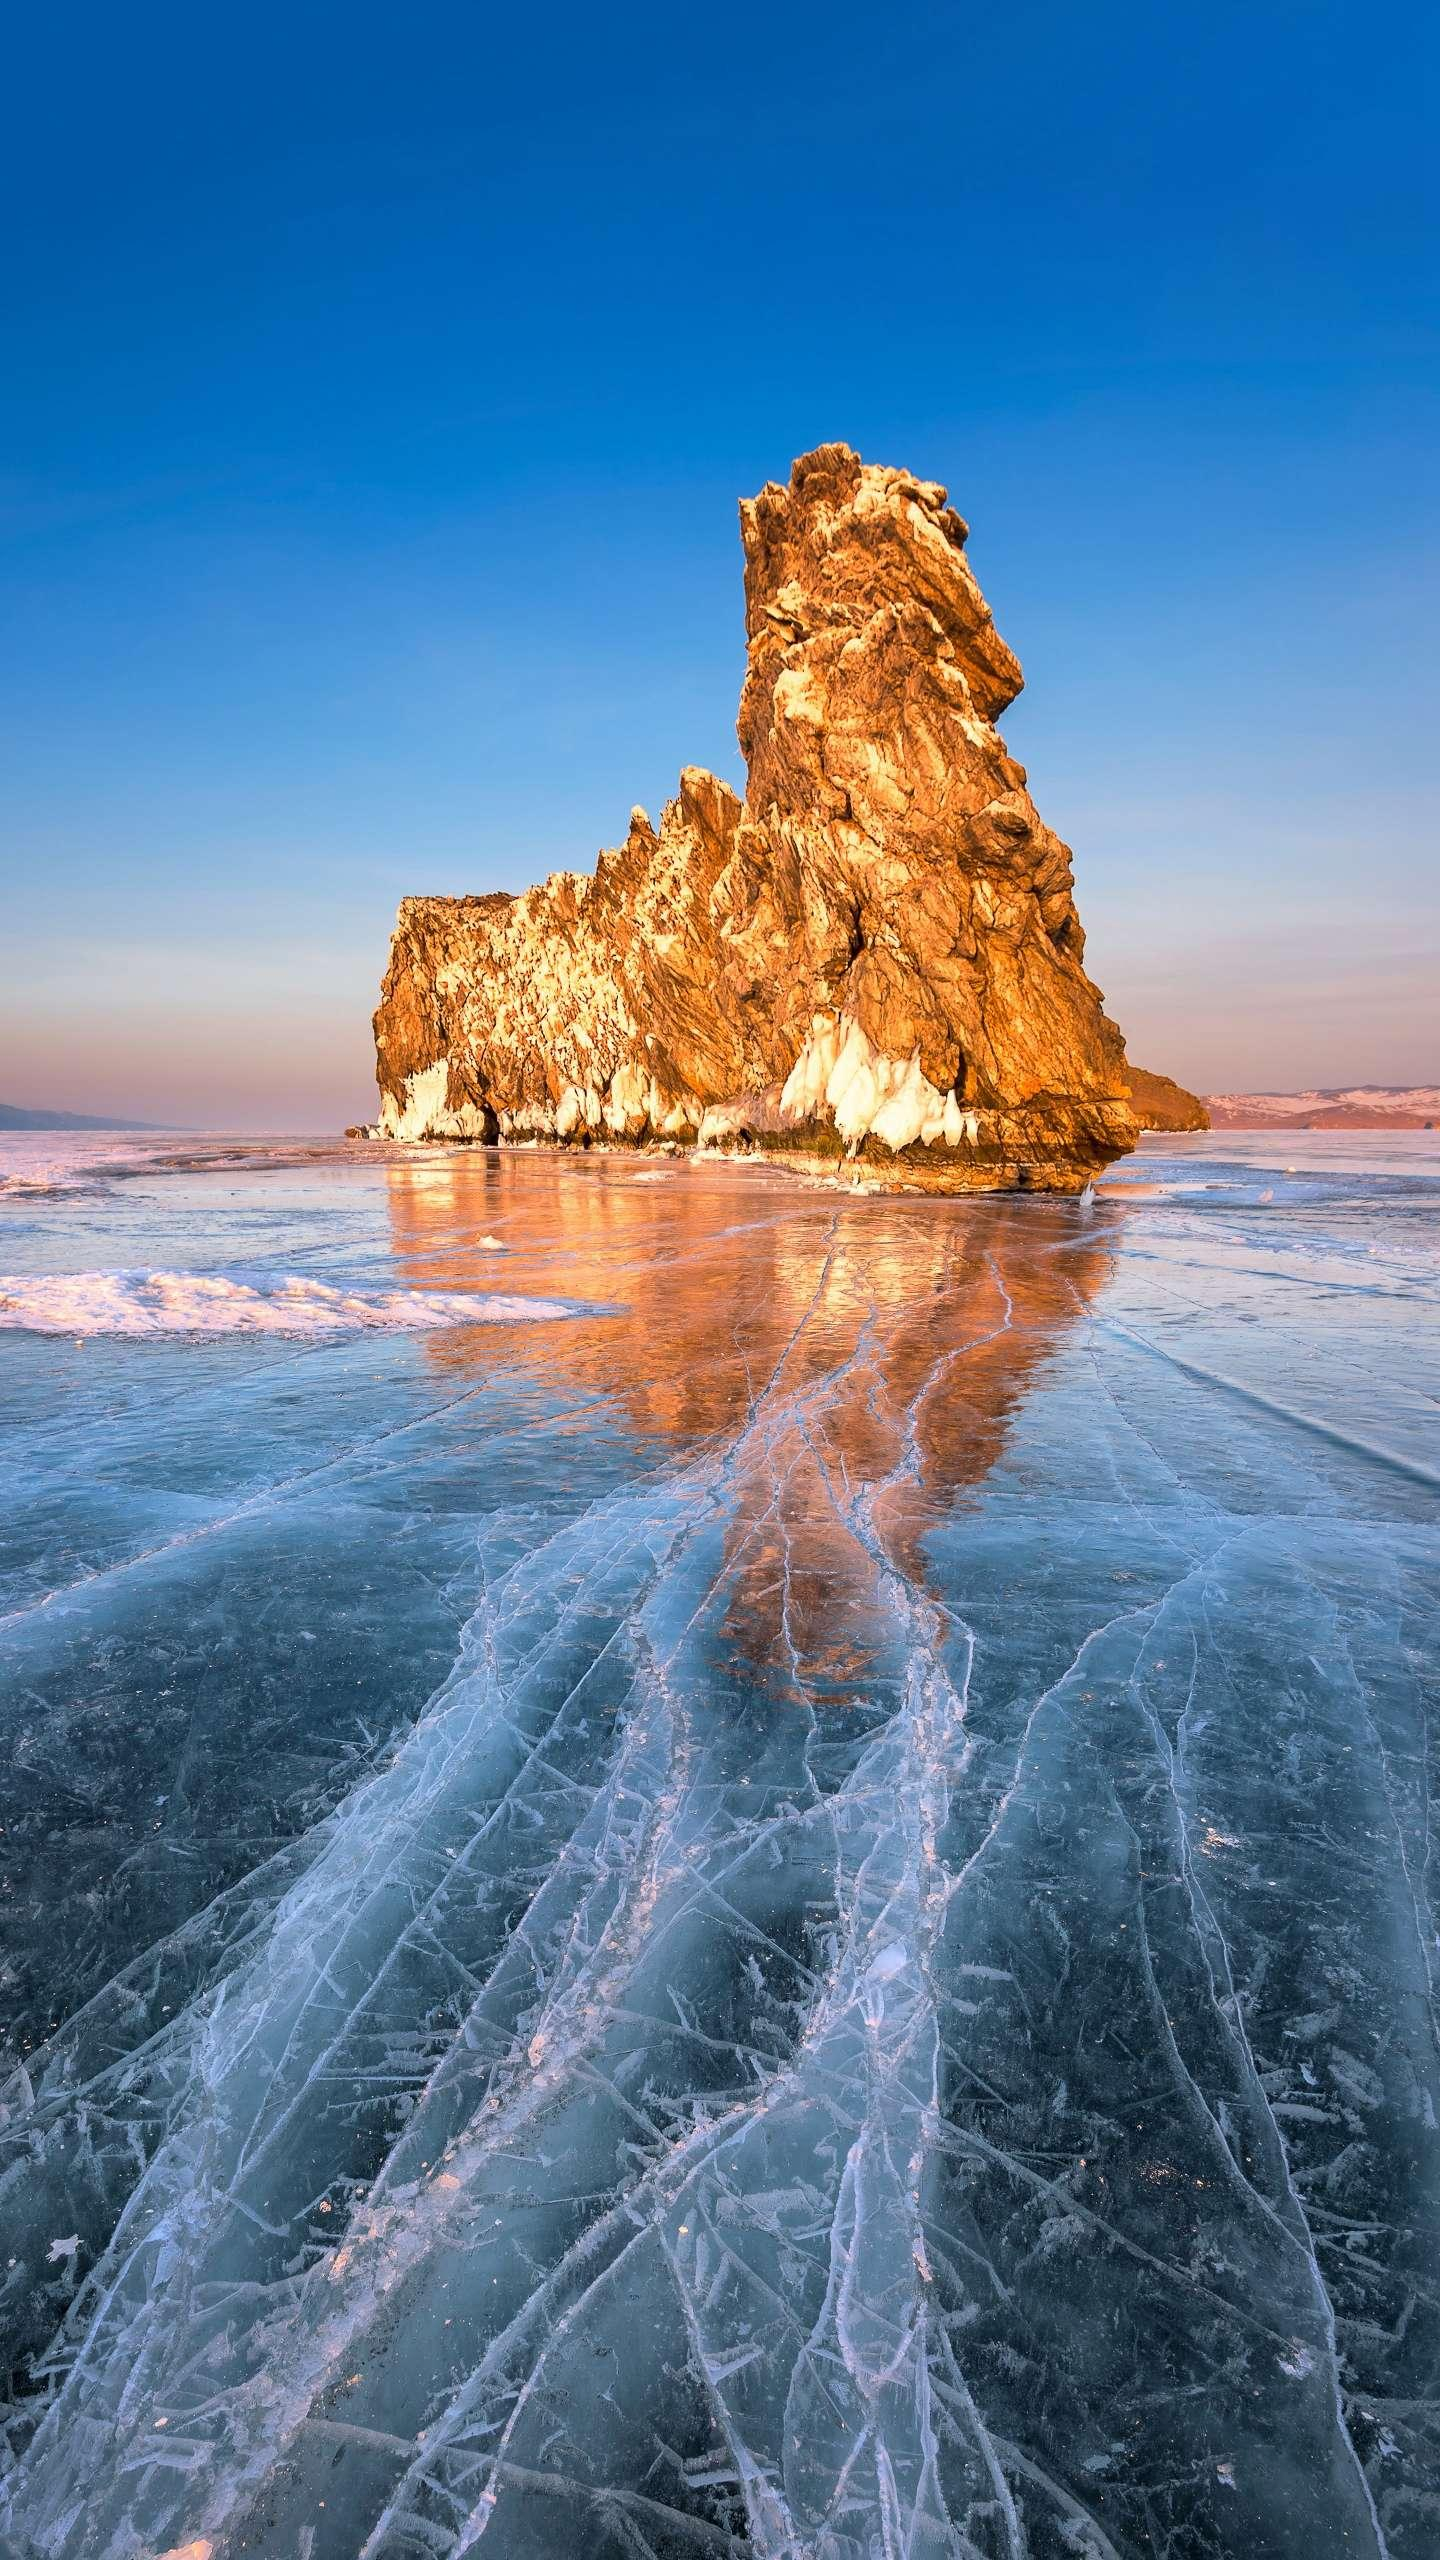 Winter Baikal wonders. Half of the beauty of Lake Baikal comes from Li Jian, and the other half comes from the winter blue scenery full of ice and ice marks.